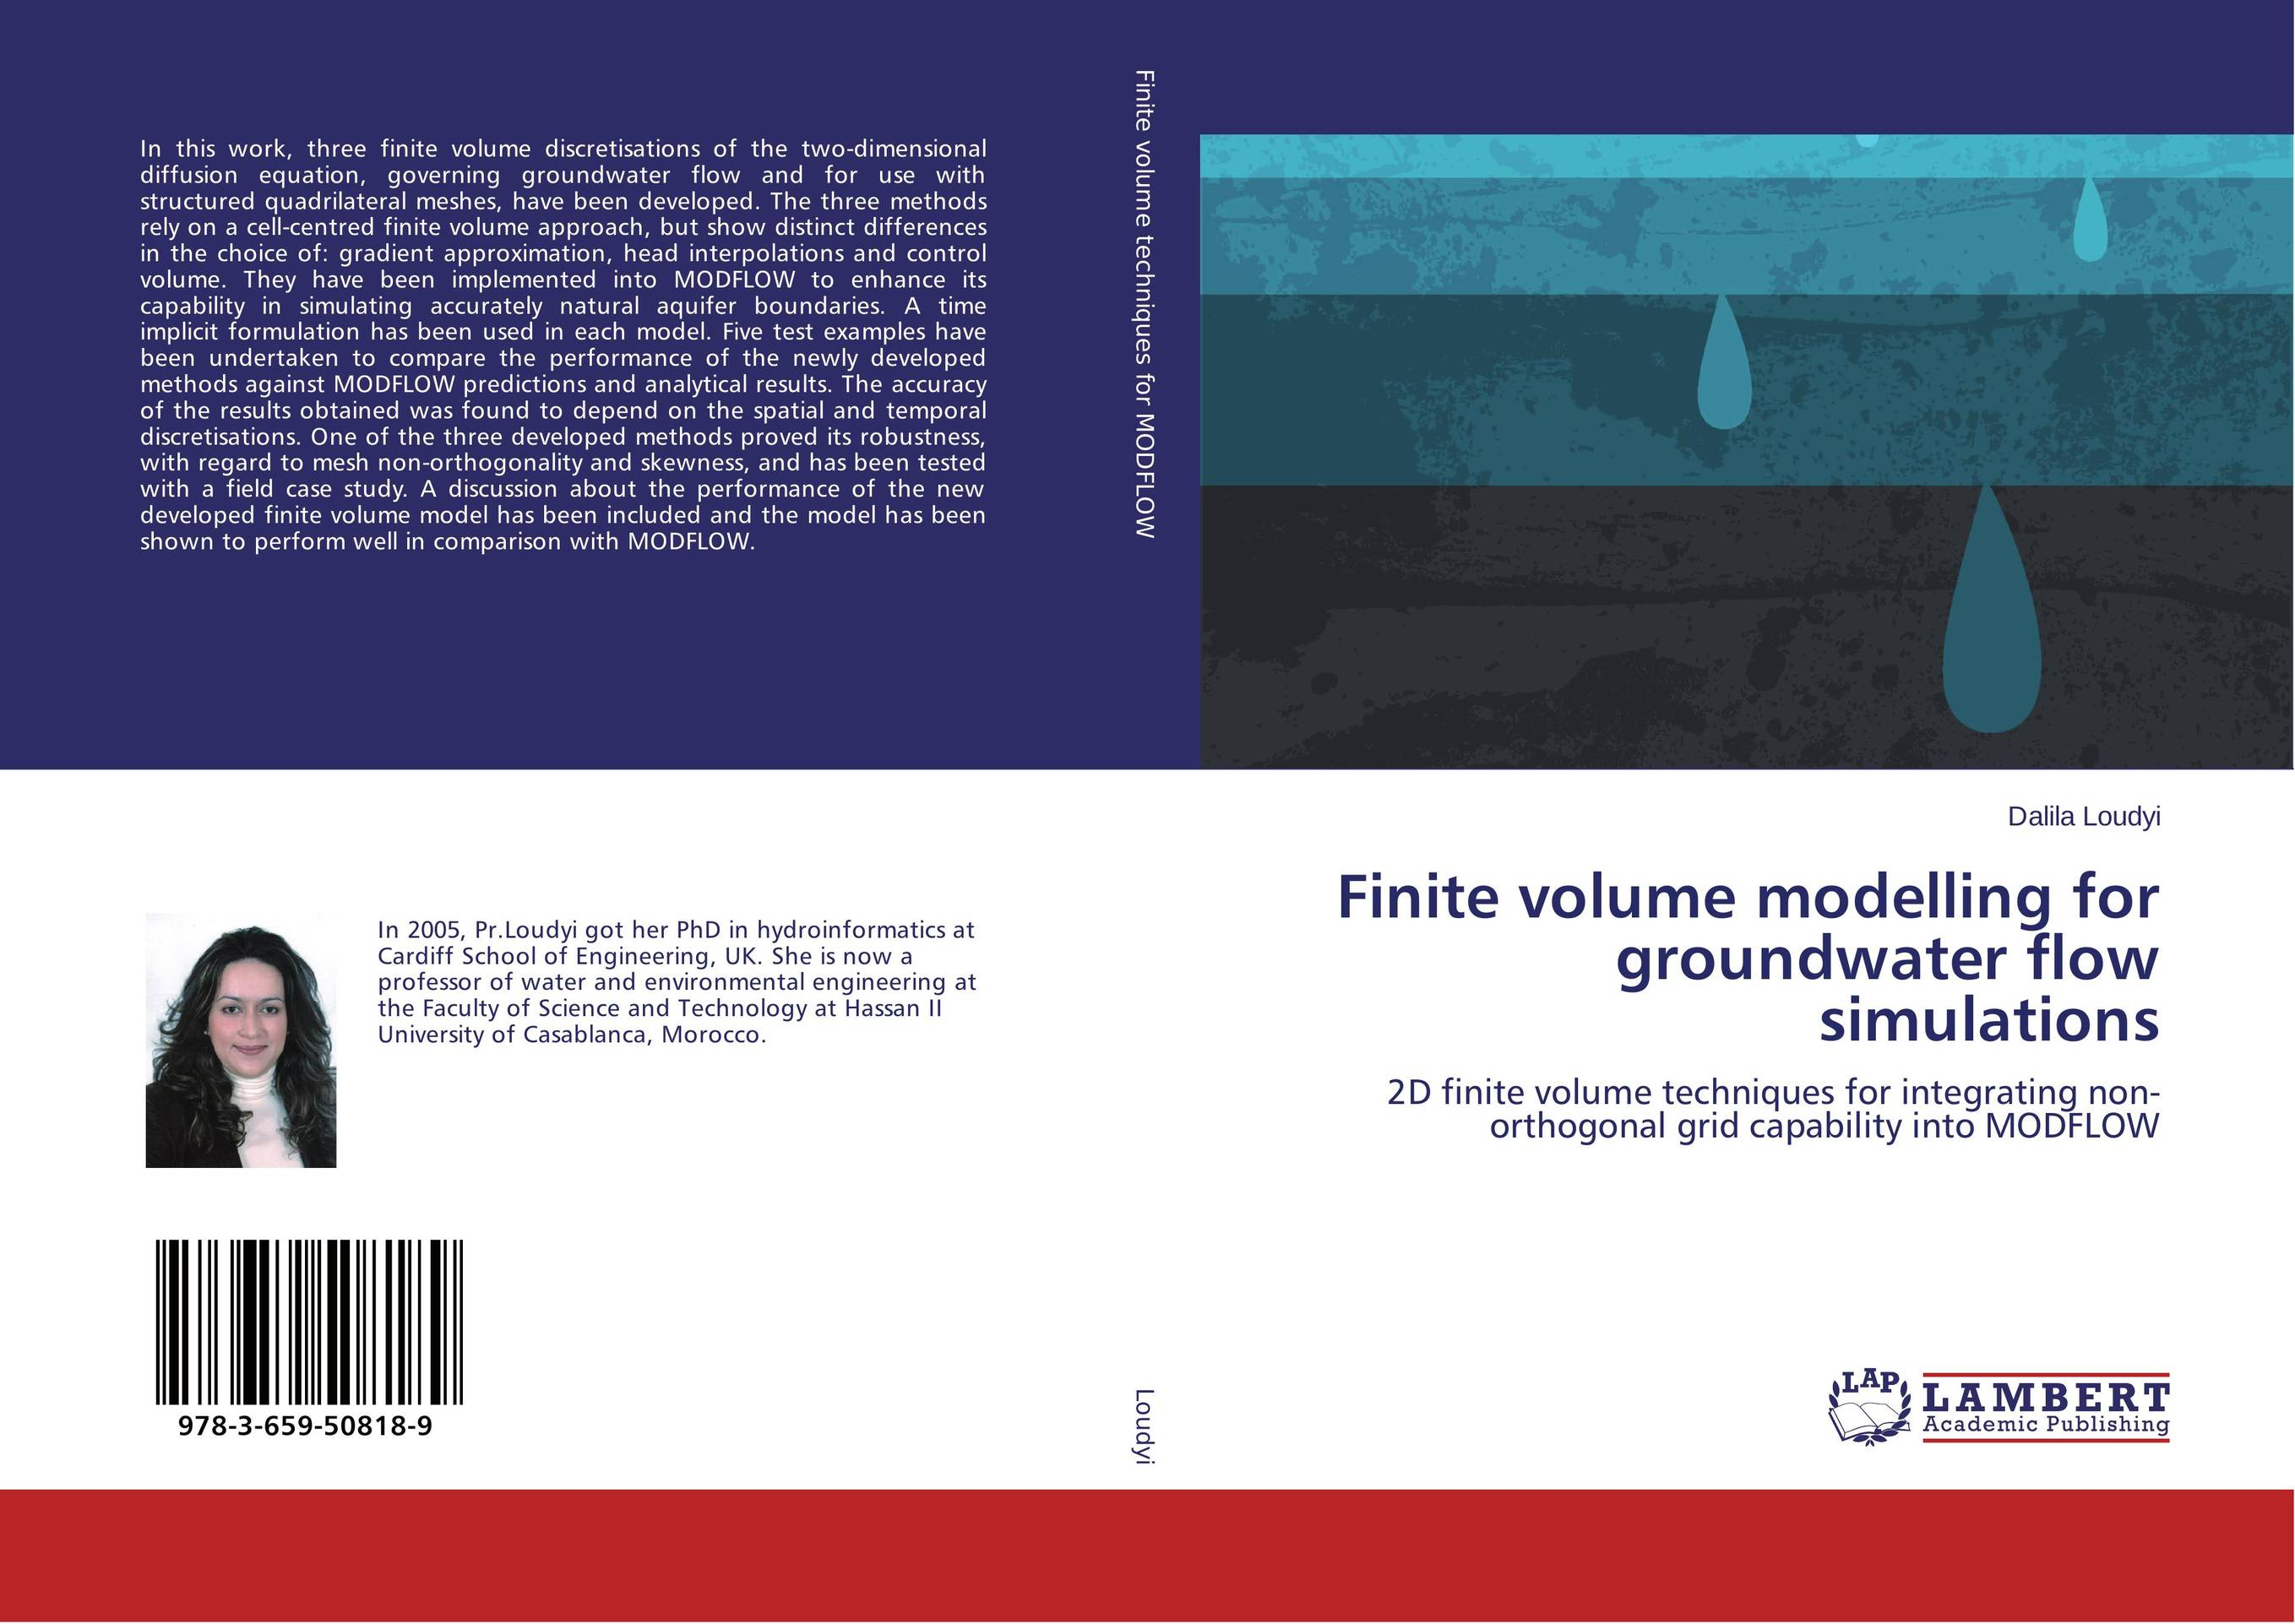 Finite volume modelling for groundwater flow simulations goon show the volume 24 the case of the missing heir